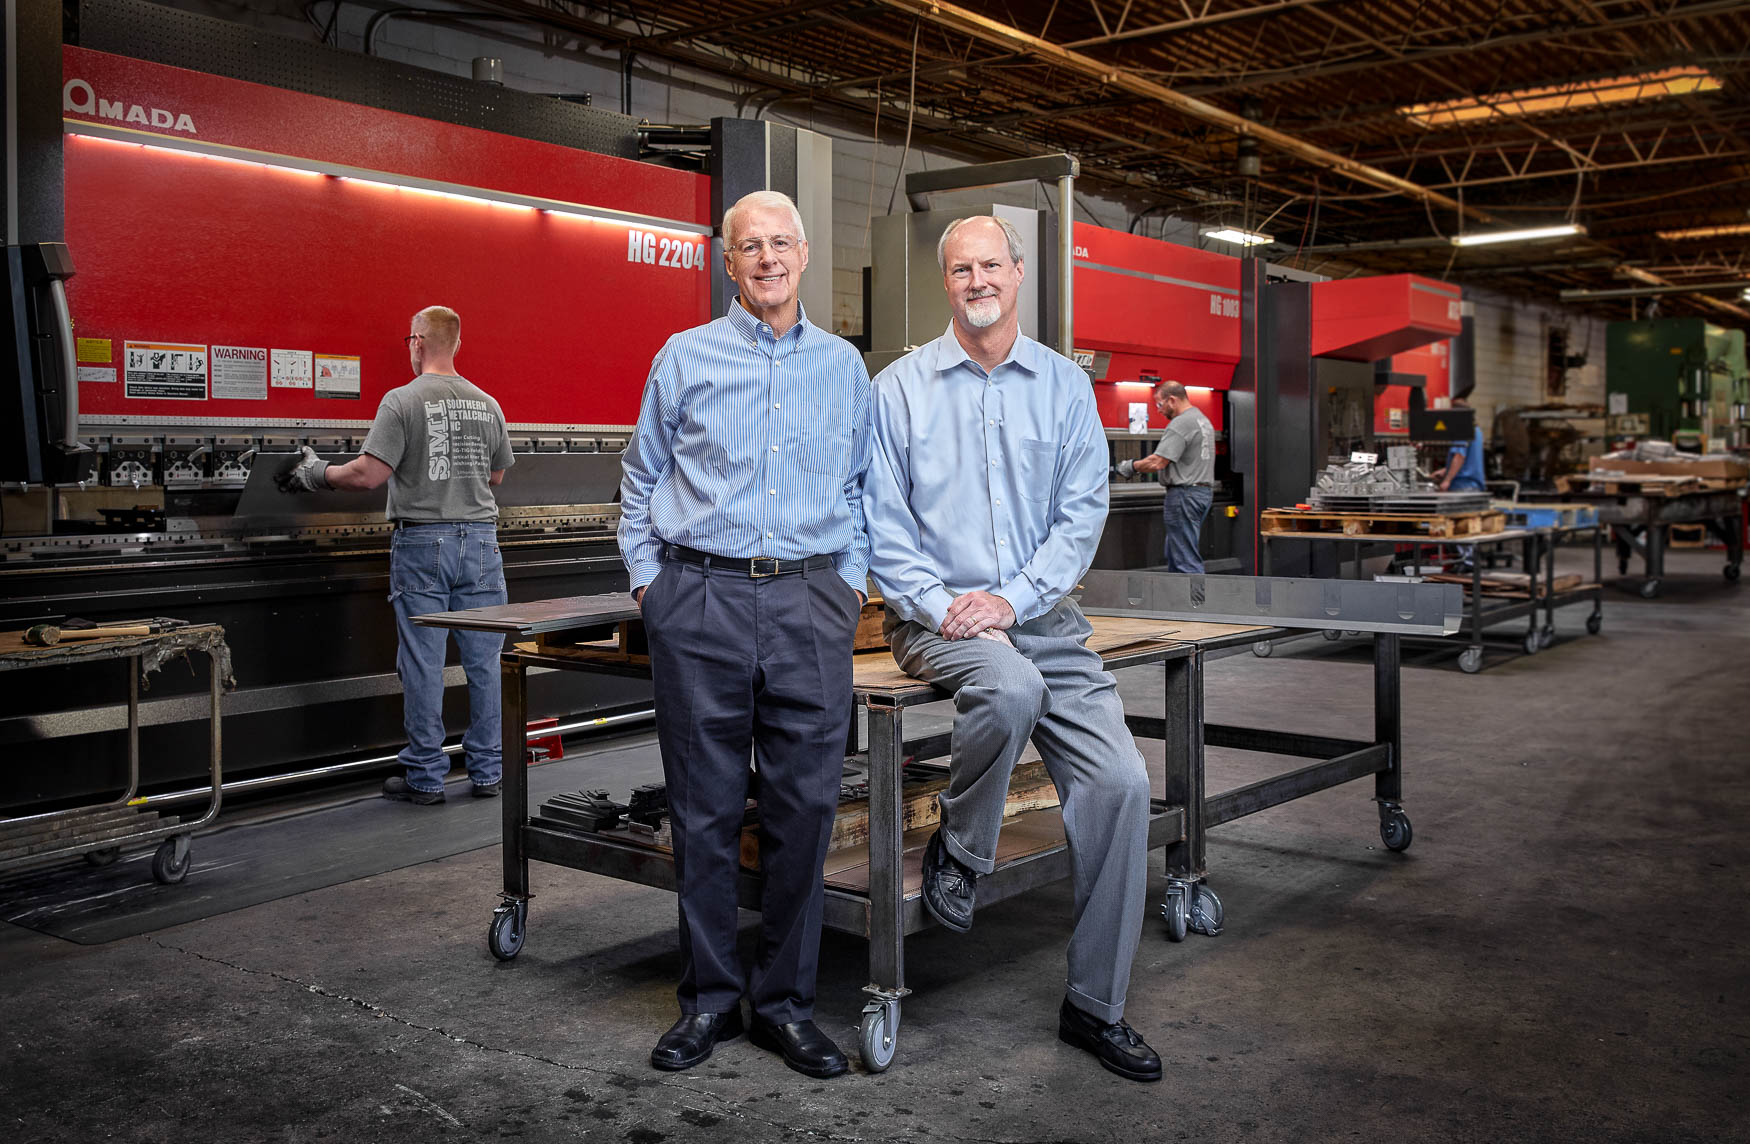 Industrial portrait of Southern MetalCraft owners shot in Atlanta